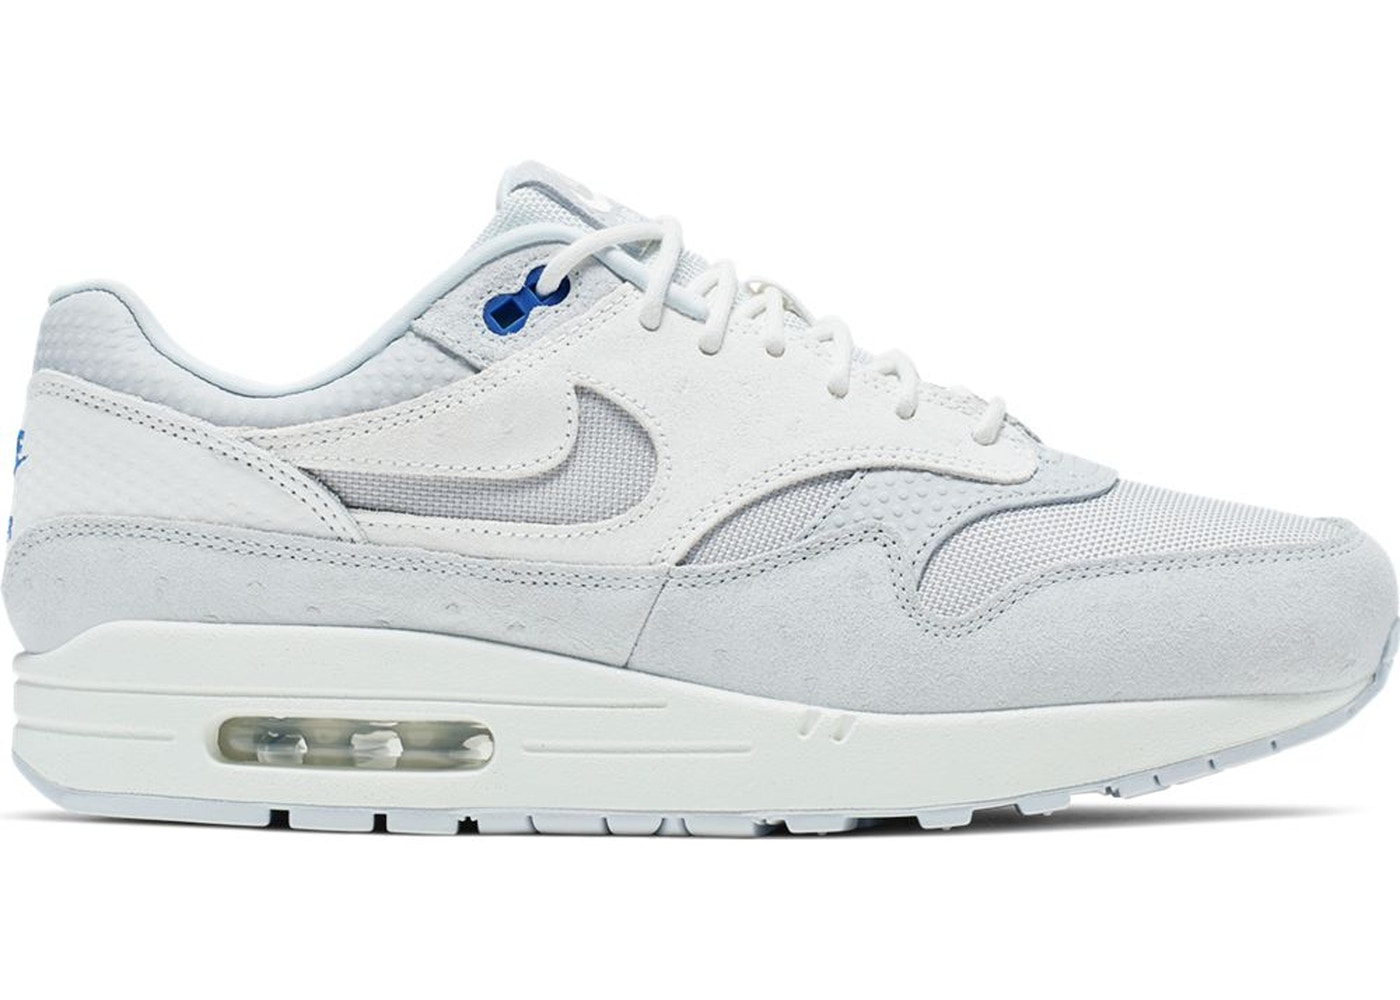 Nike Air Max 1 Pure Platinum Racer Blue